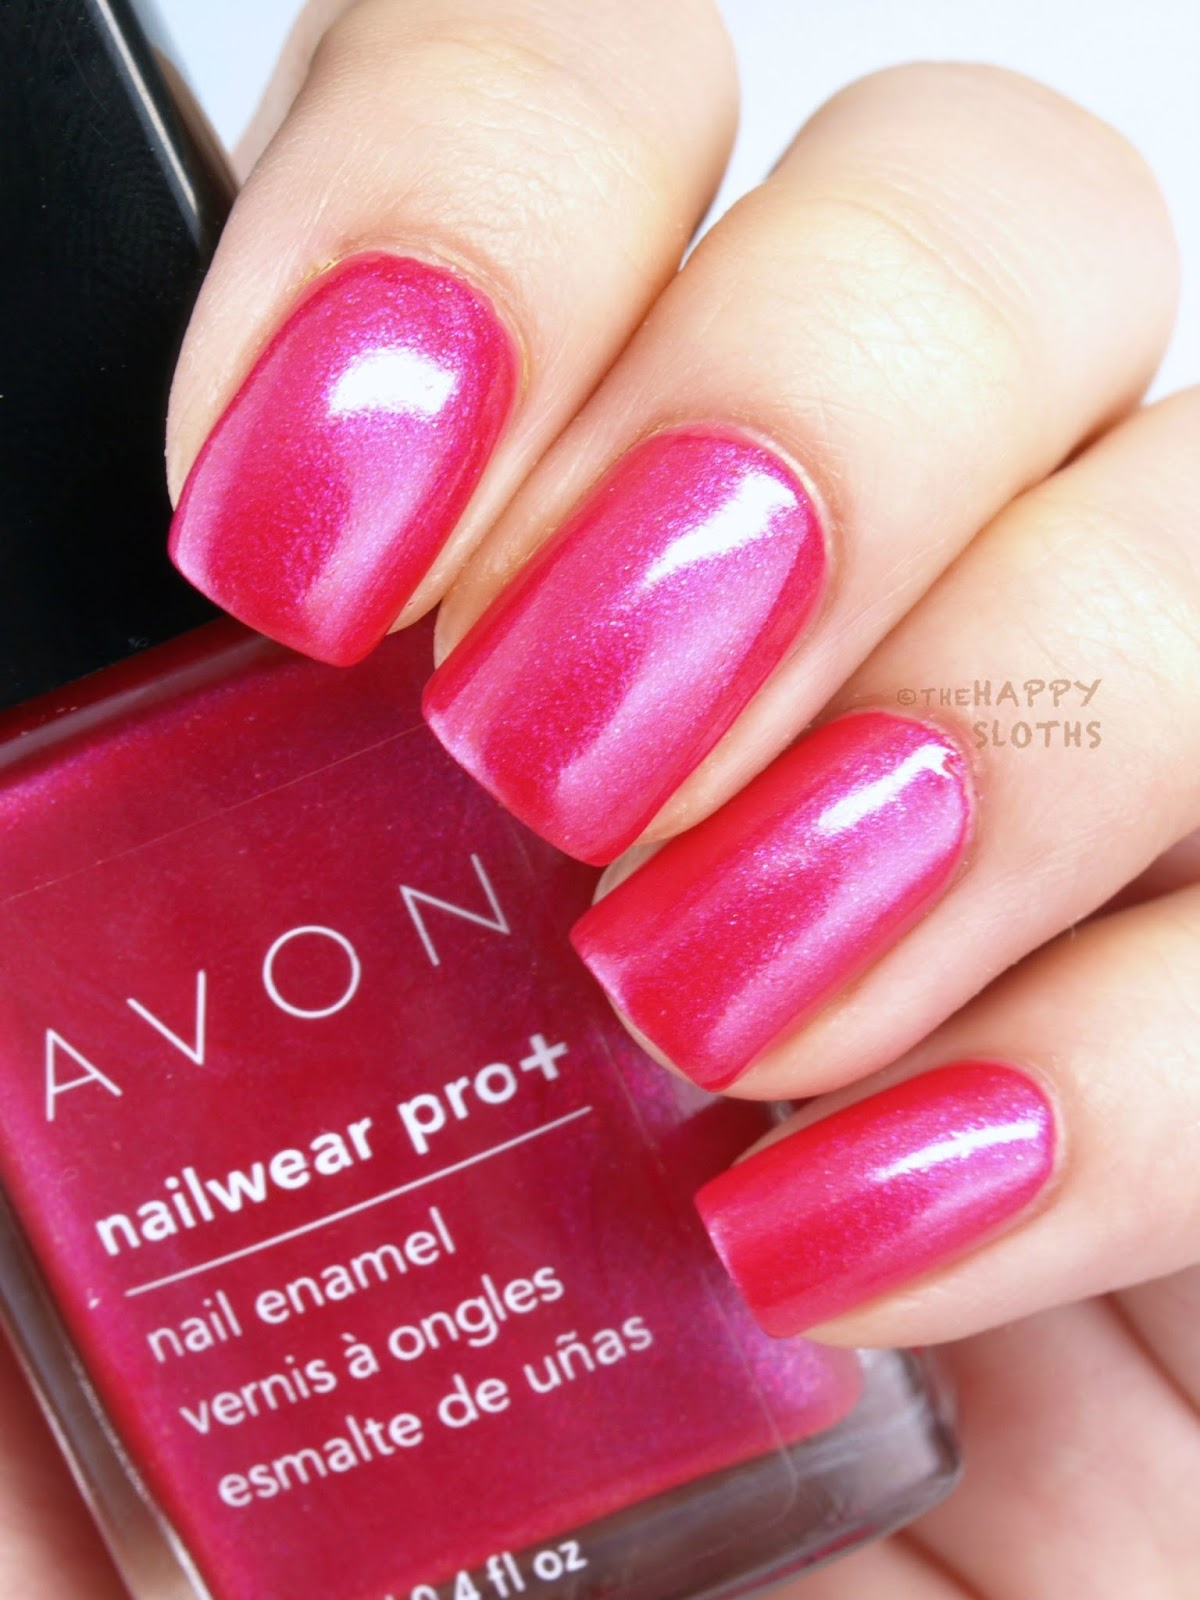 Avon Electric Shades Collection Nailwear Pro+ Nail Enamel: Review ...